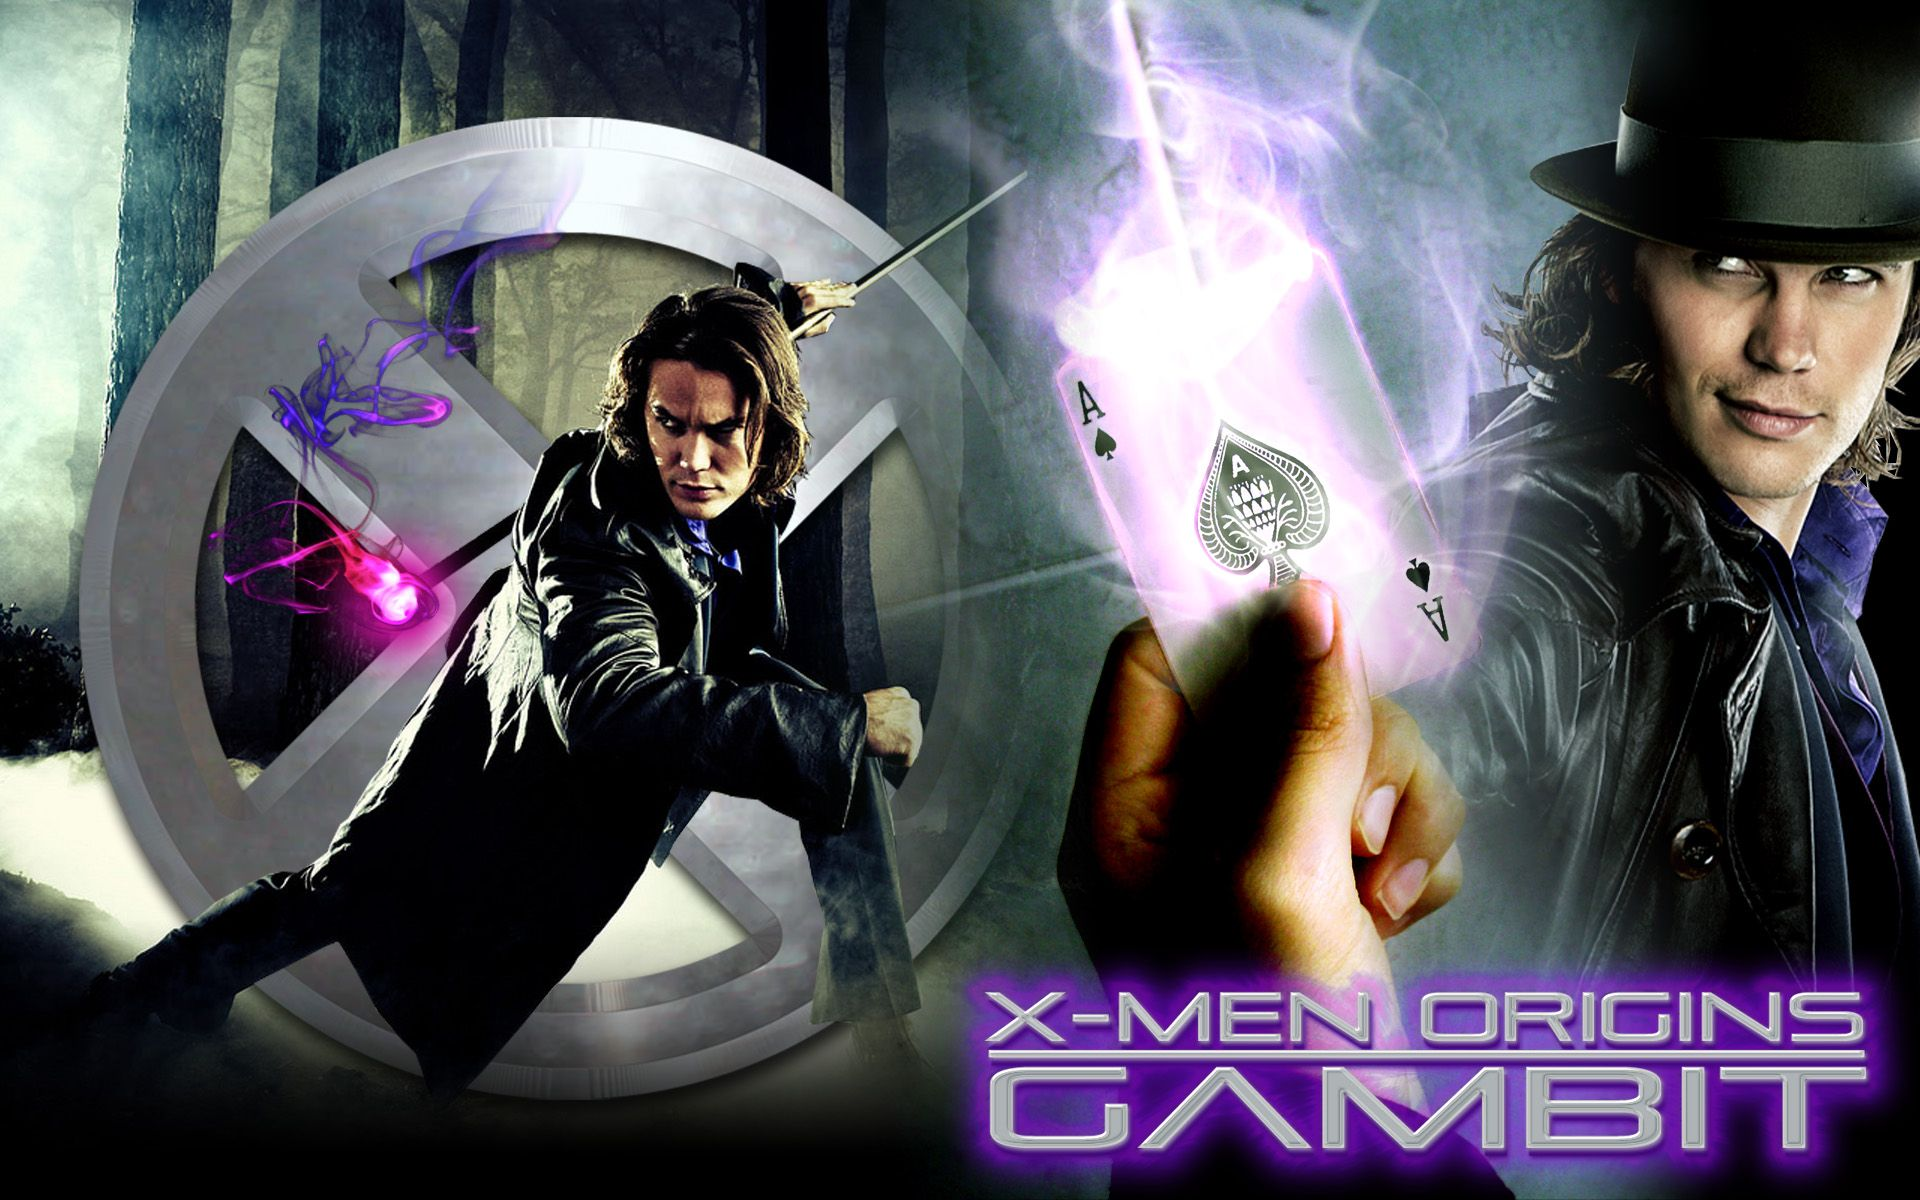 gambit xmen marvel men gambit movie marvel men